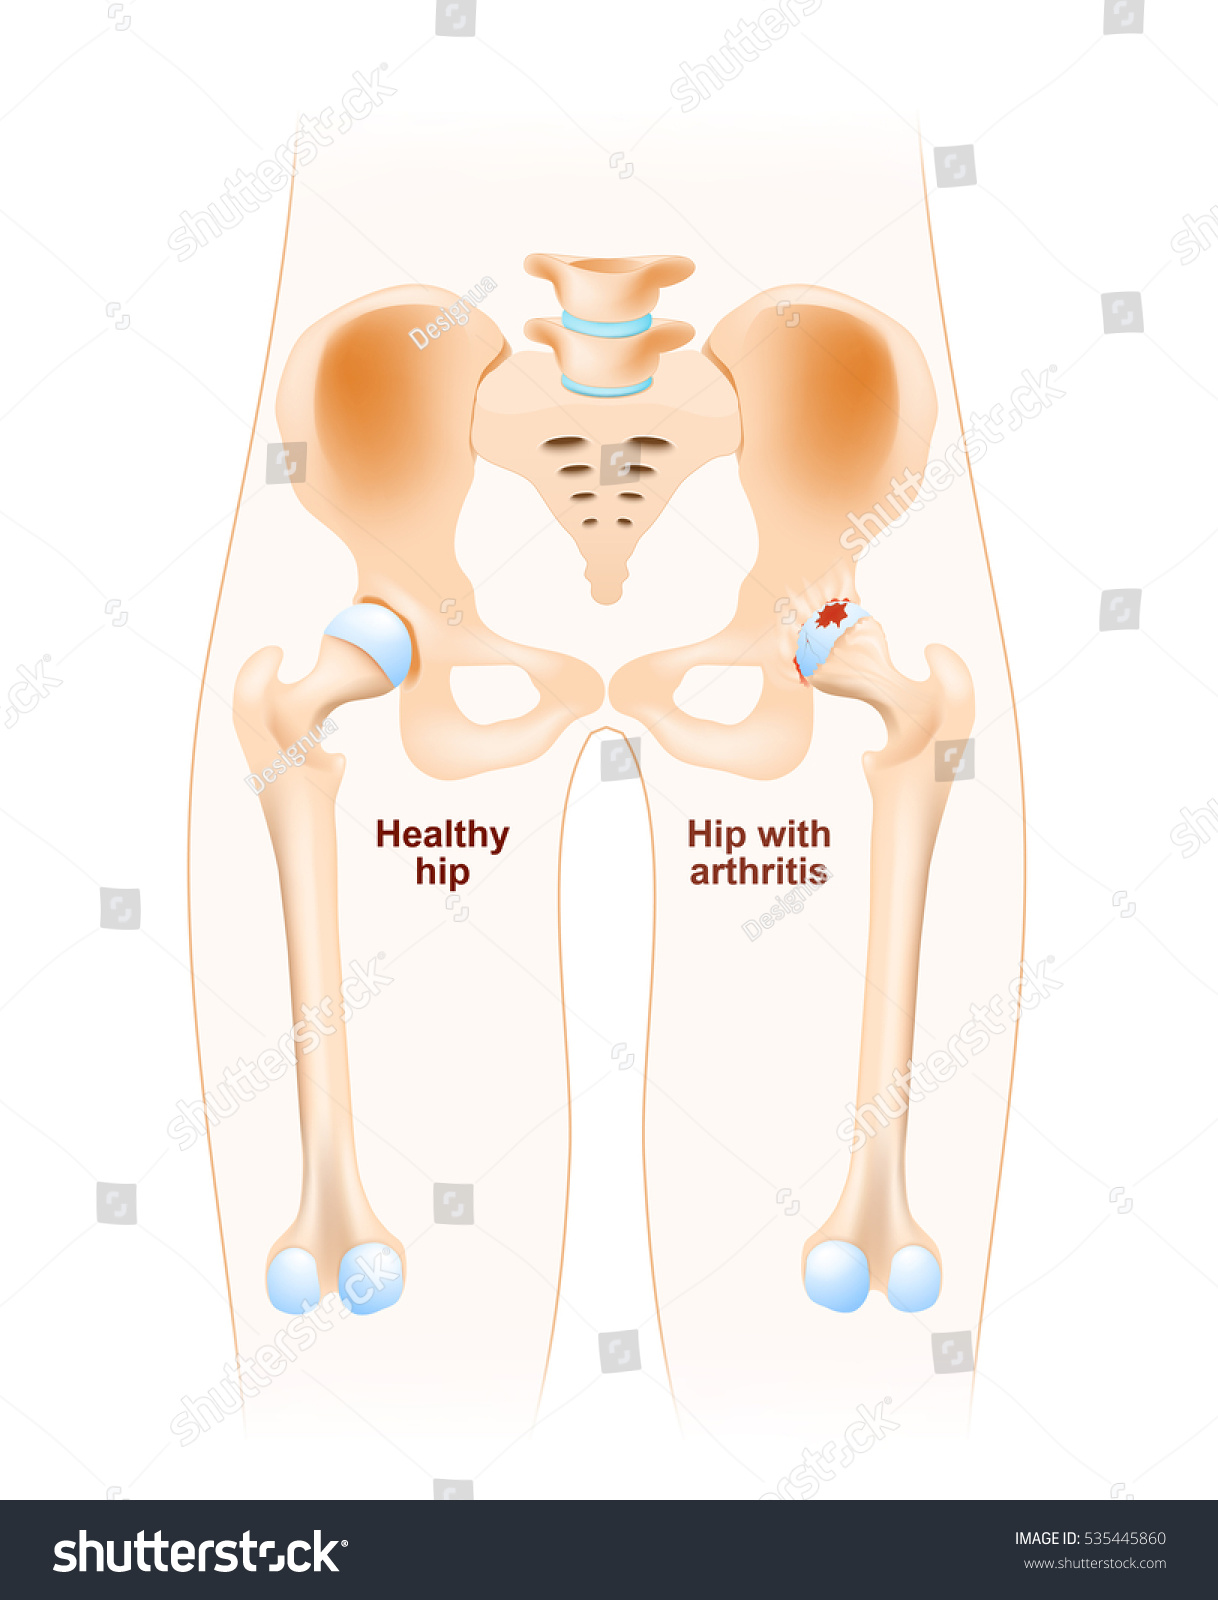 how to build cartilage in hip